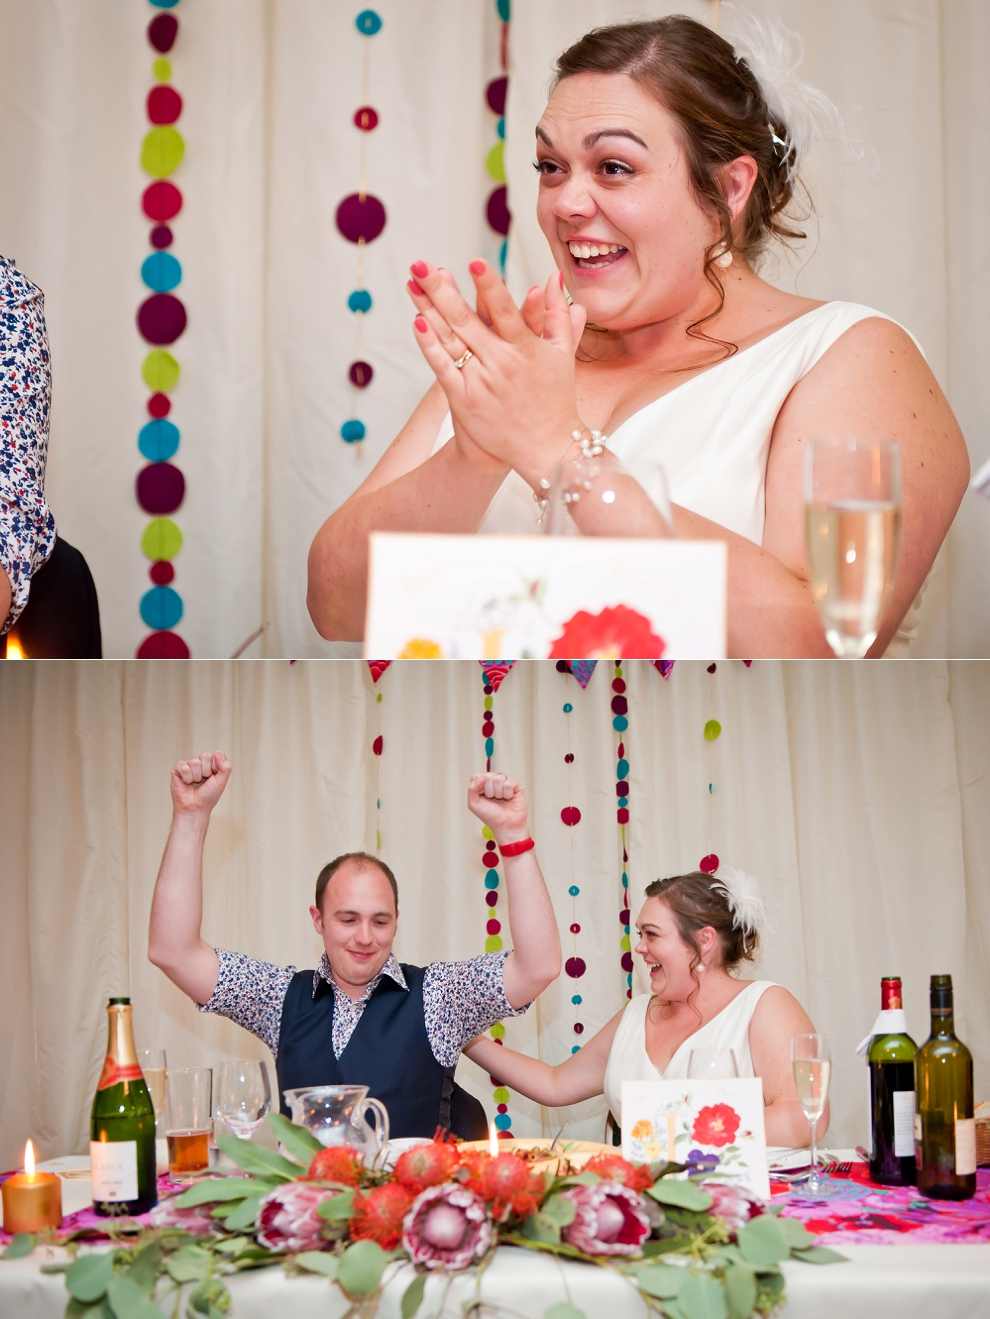 Rickety-Barn-Cambridgeshire-Wedding-Penny-Ben-59